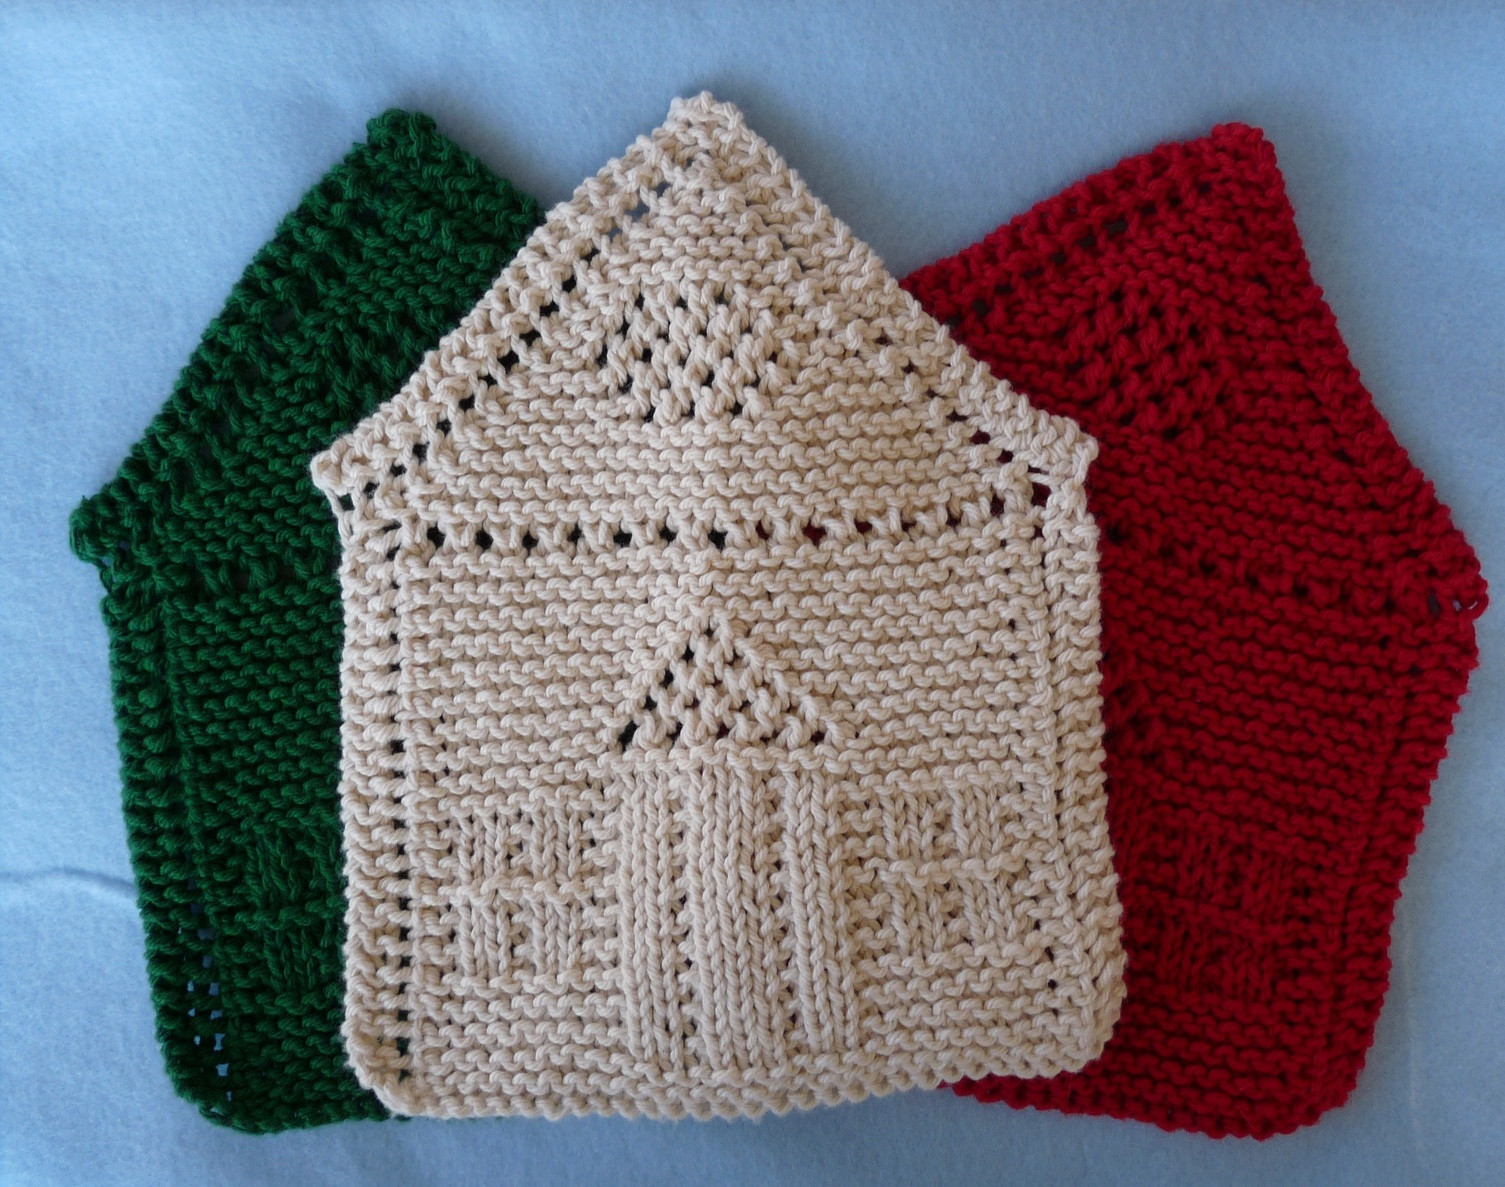 Luxury Whiskers & Wool January 2012 Knitted Dishcloth Patterns for Christmas Of Adorable 43 Pics Knitted Dishcloth Patterns for Christmas